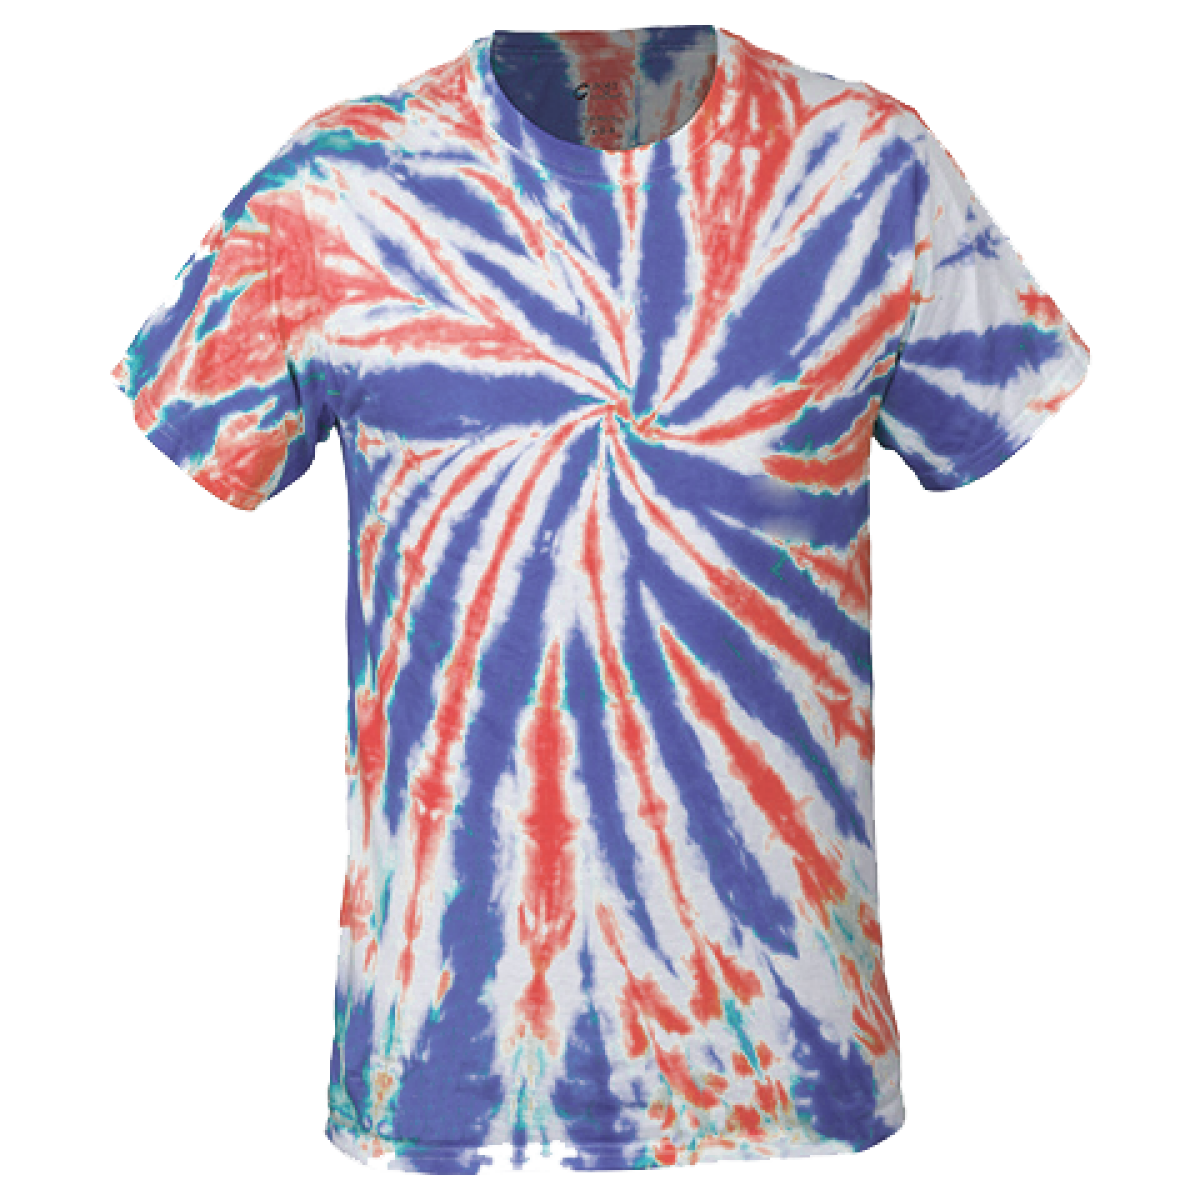 Multi-Color Tie-Dye Tee -Red/White/Blue-L